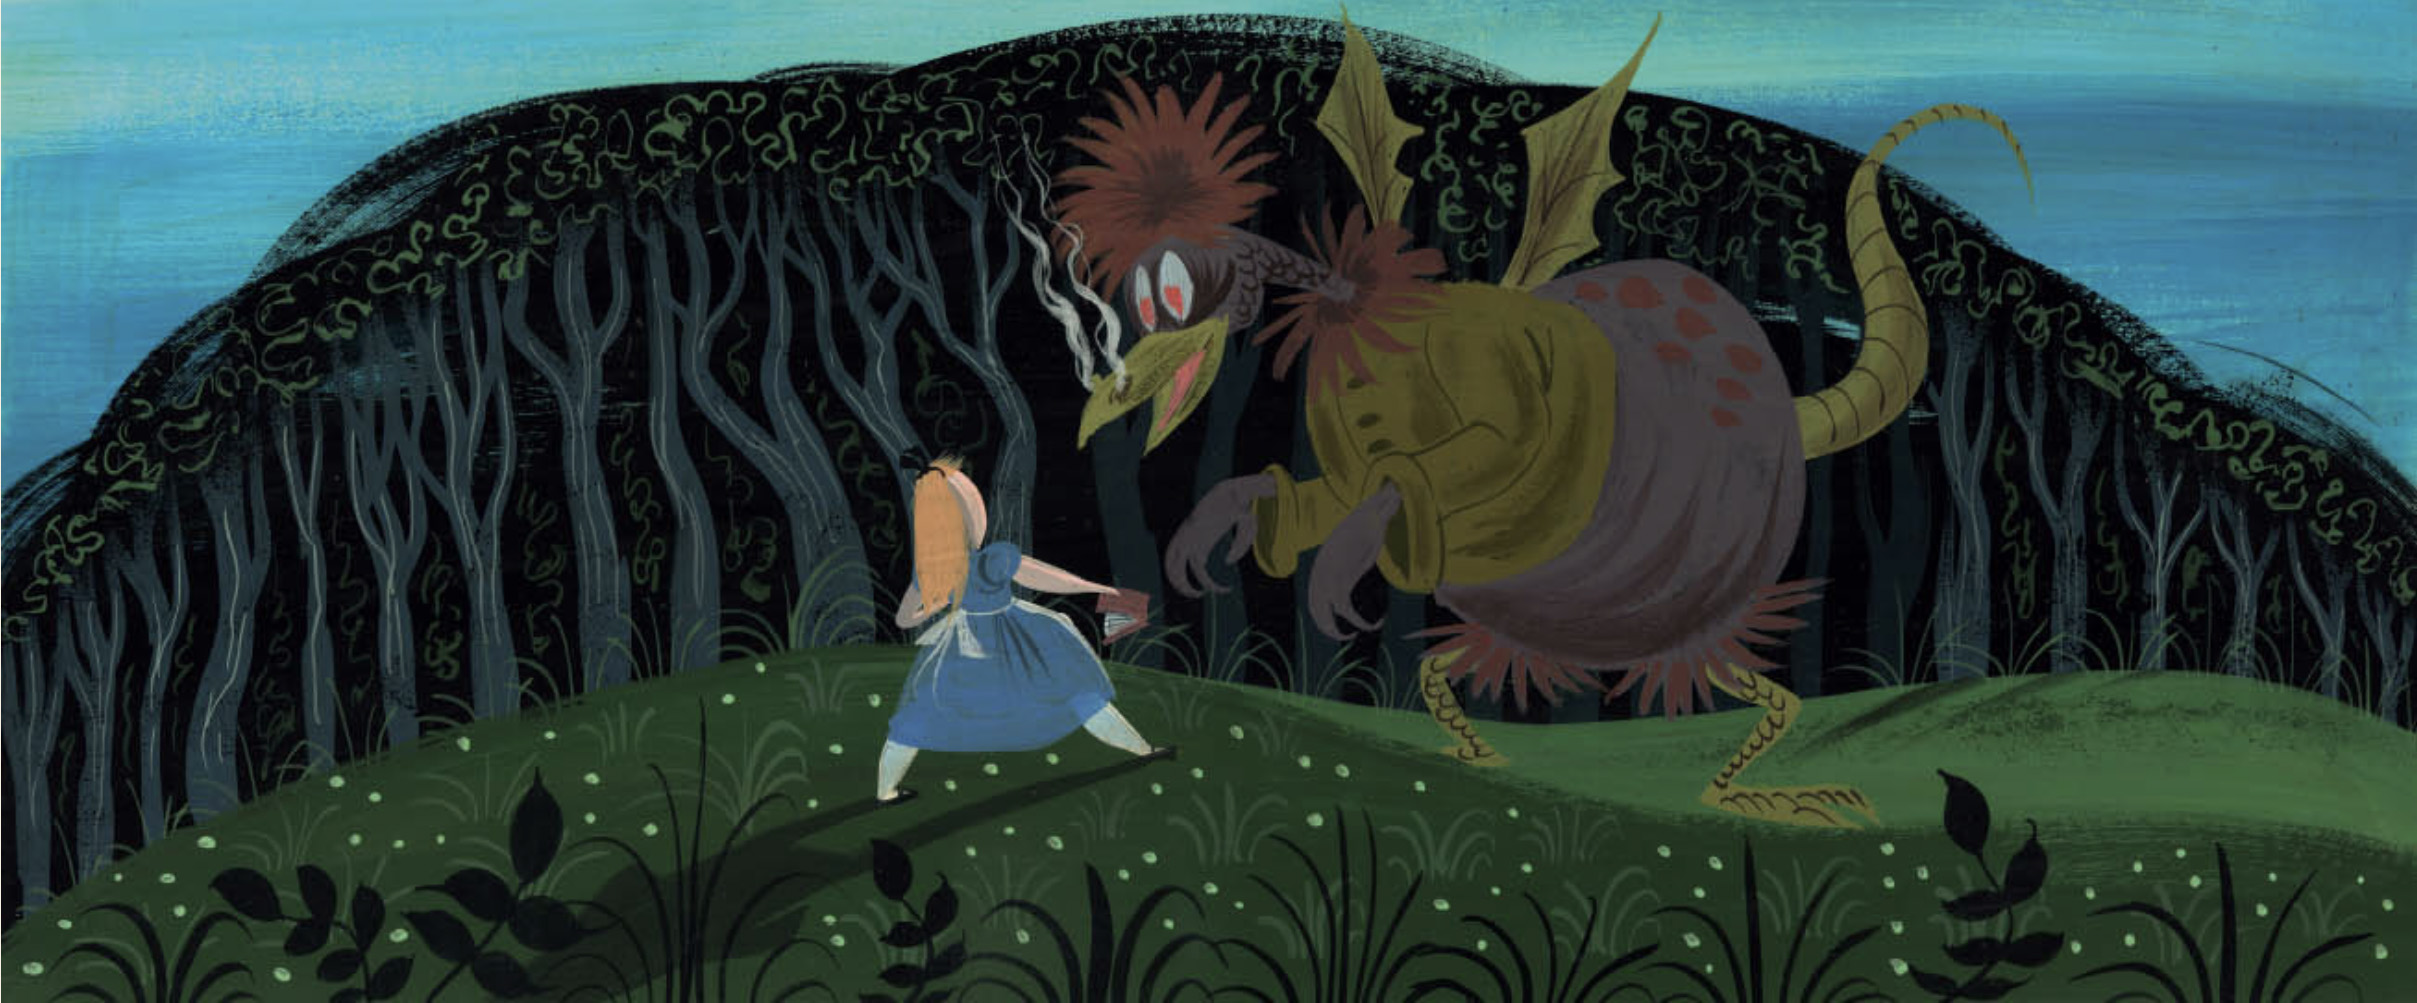 Mary Blair concept Tulgey Wood sequence Alice in Wonderland